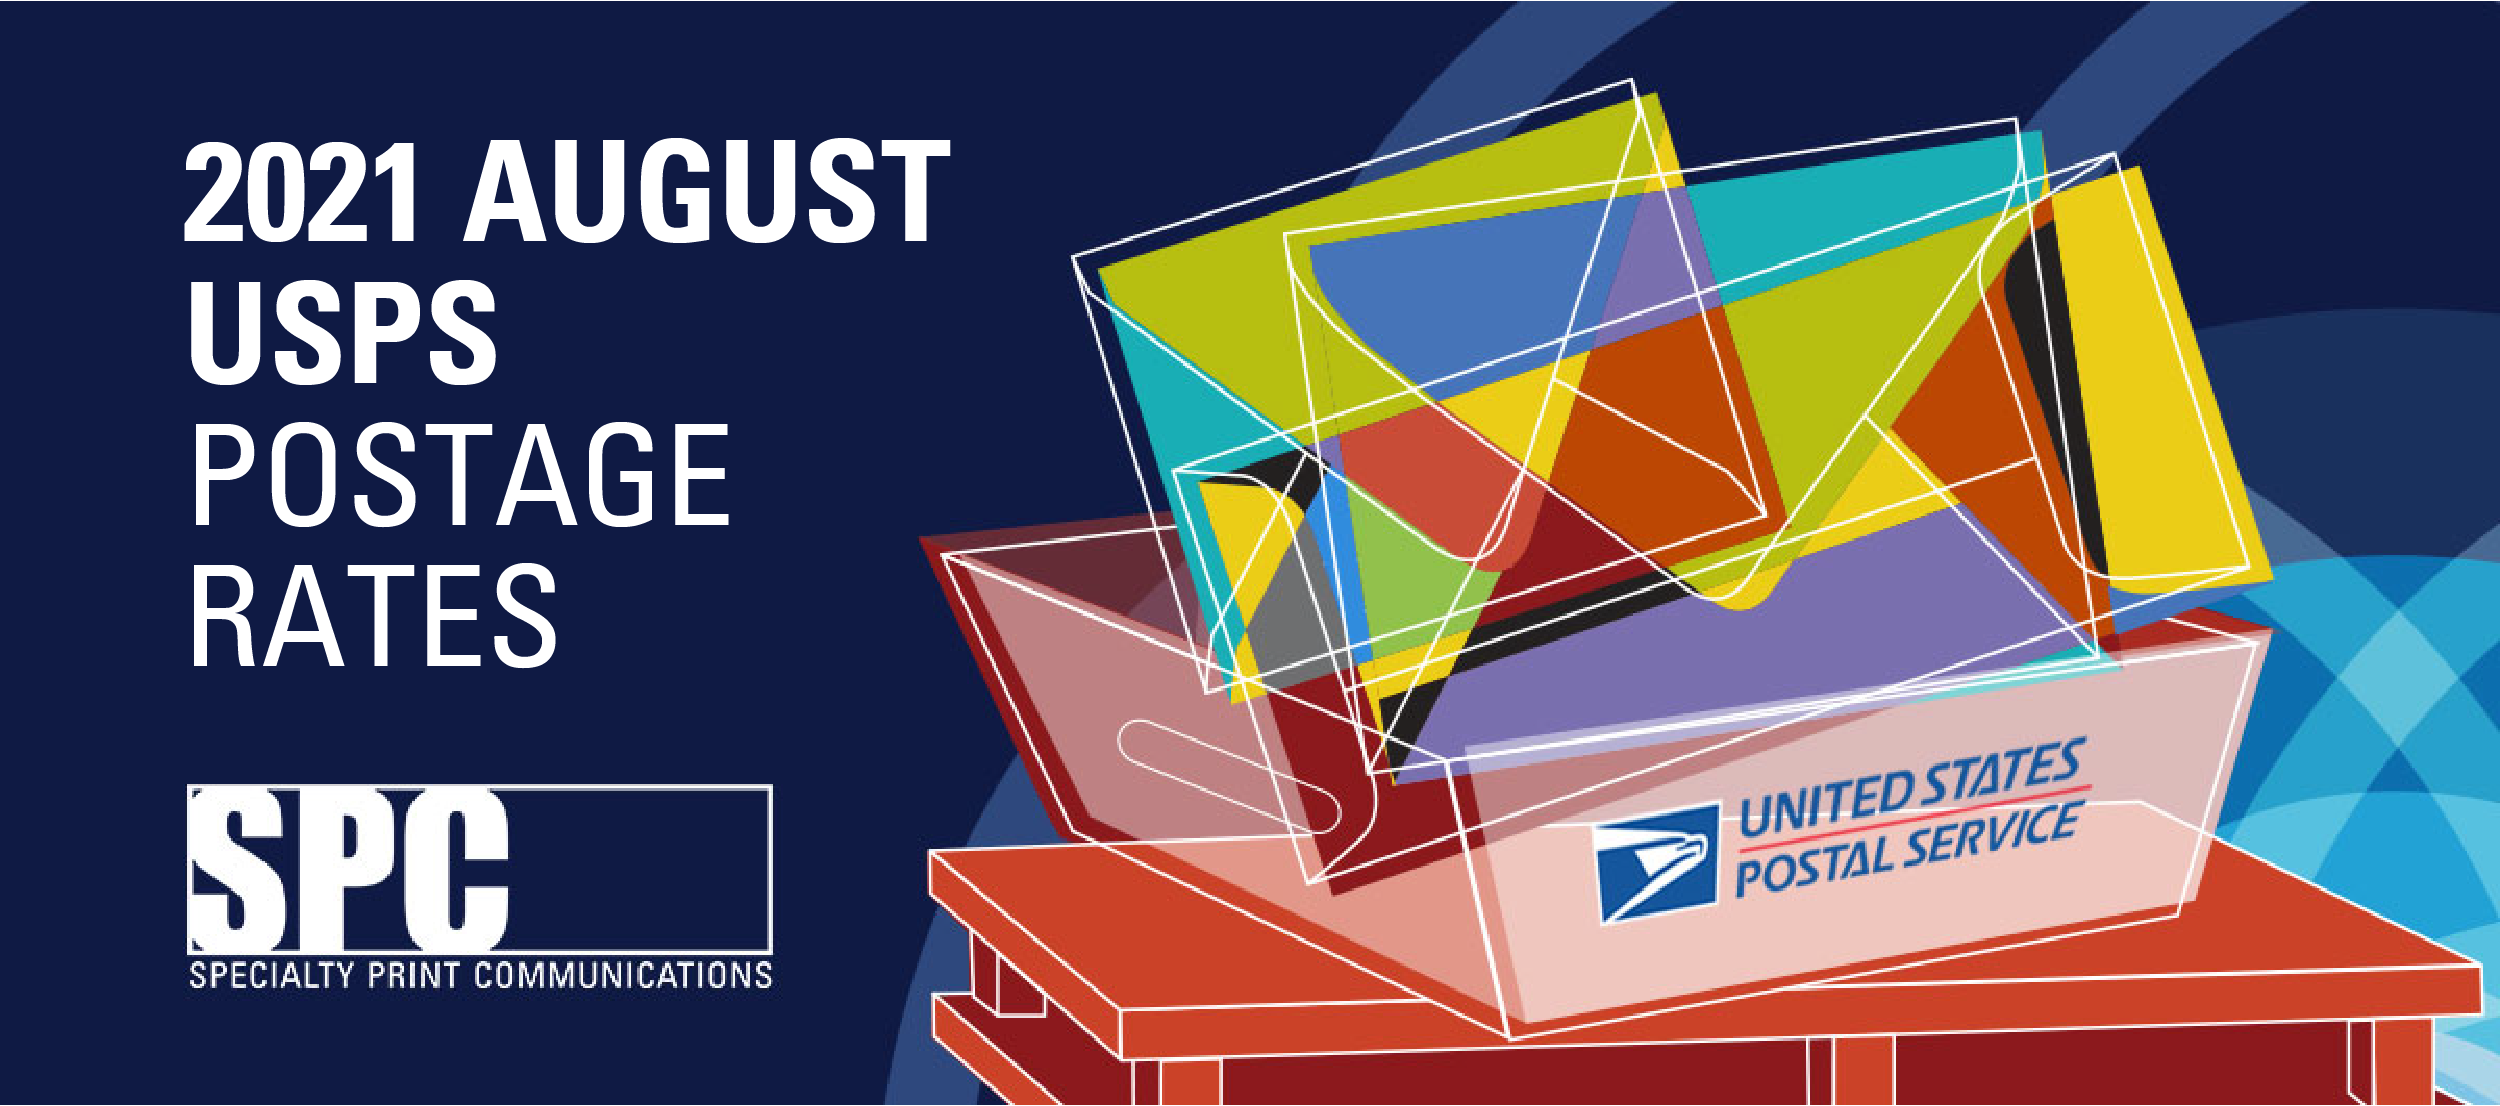 2021 August USPS Postage Rates